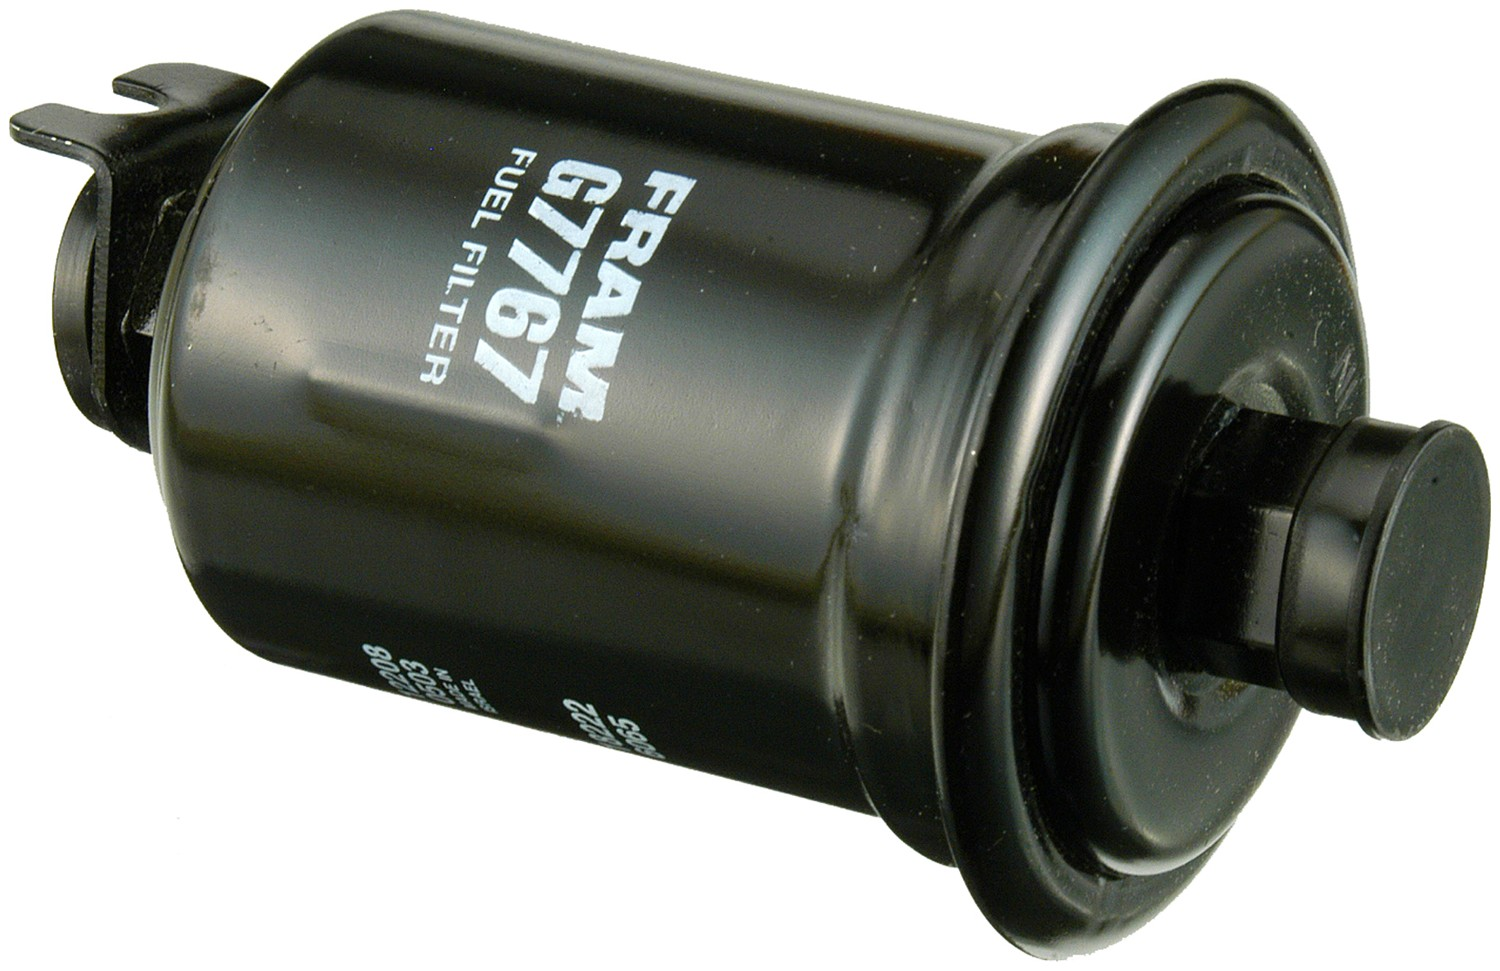 2000 Toyota Camry Fuel Filter 1997 Location Ff G7767